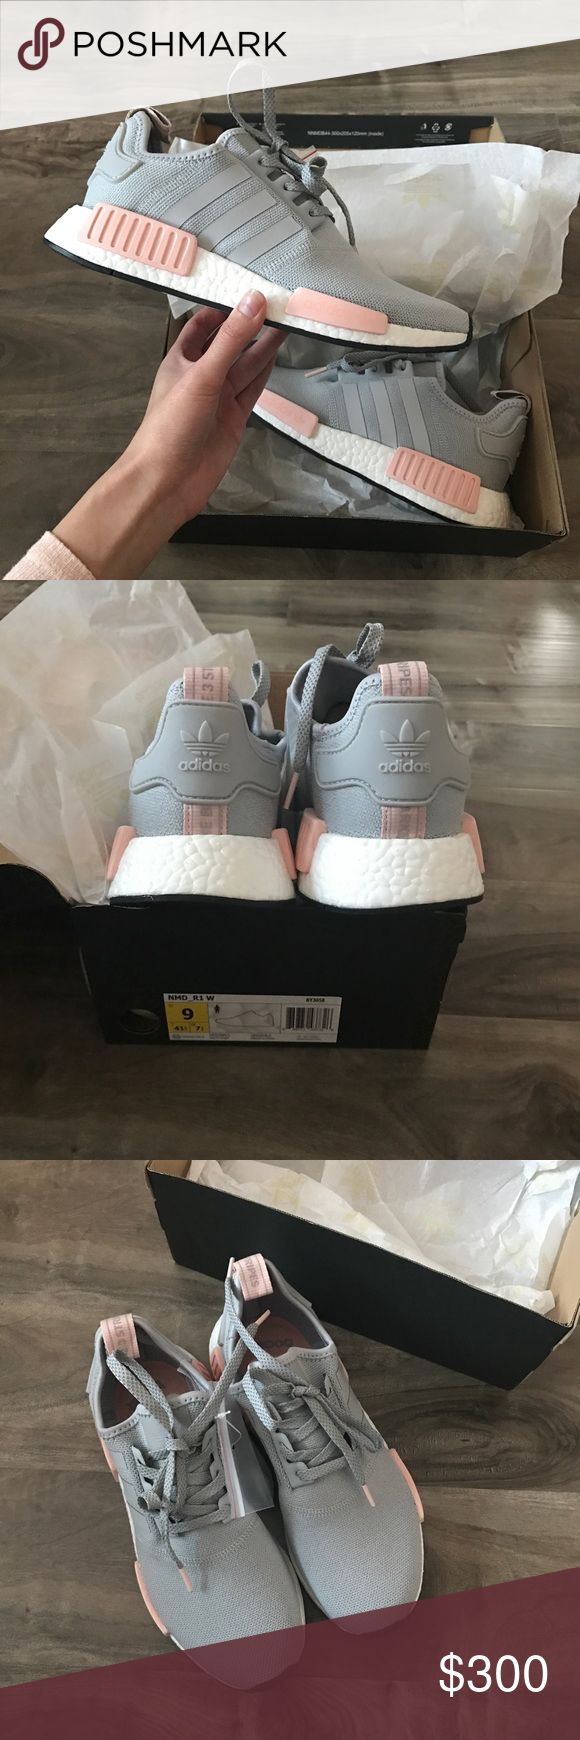 "• adidas nmd r1 • Brand: Adidas Size: 9 Condition: Brand new in box, only tried on. Description: NMD R1 ➕Additional pictures upon request. ➕Pls ask ALL questions prior to purchasing. ➕Offers via offer button, only pls. ➖No trades, no holds, no ""lowest?"" Adidas Shoes Sneakers"